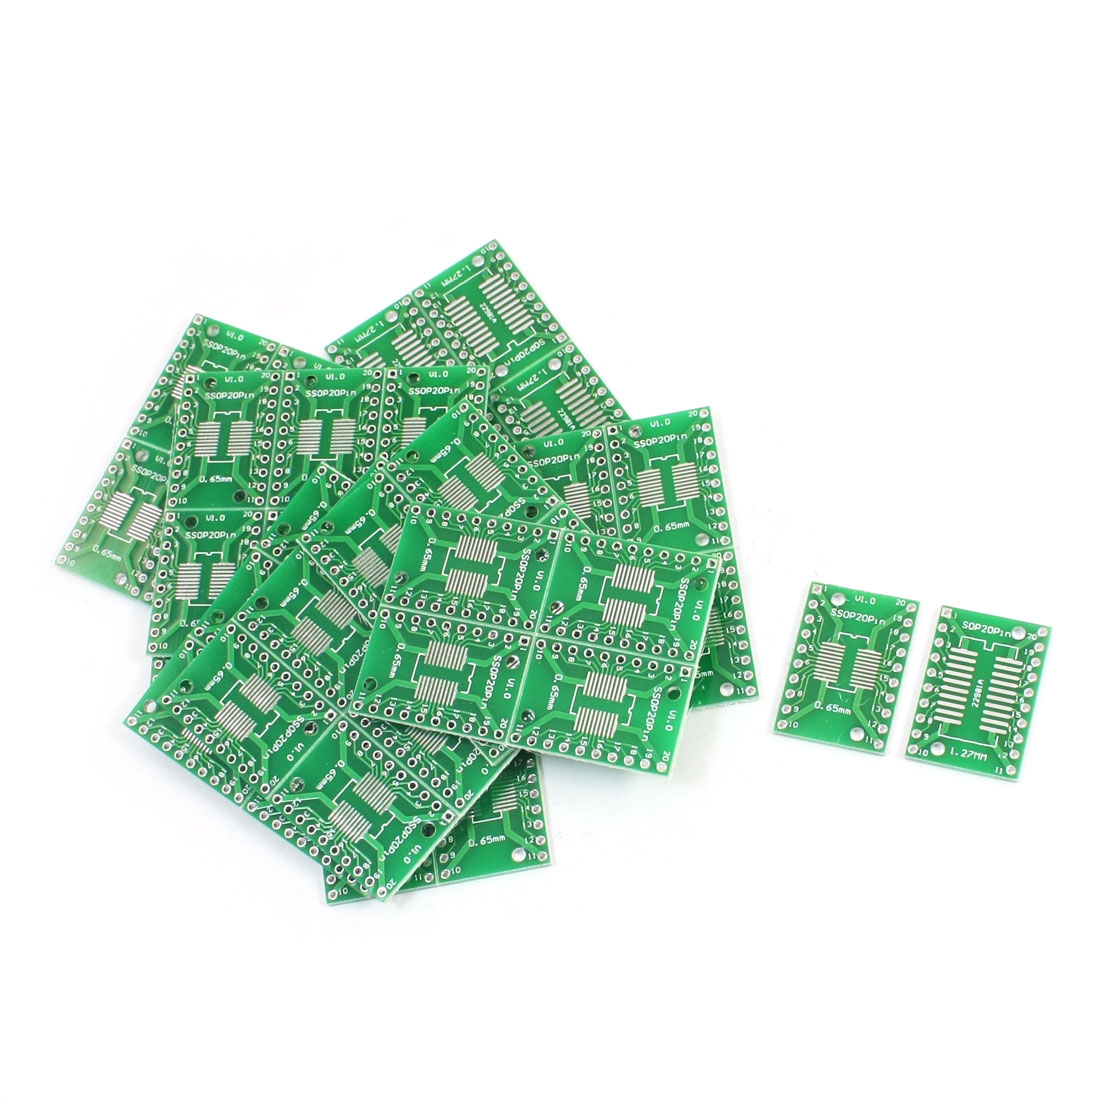 50Pcs SOP20 SSOP20 TSSOP20 0.65mm 1.27mm to DIP20 2.54mm PCB Adapter Converter